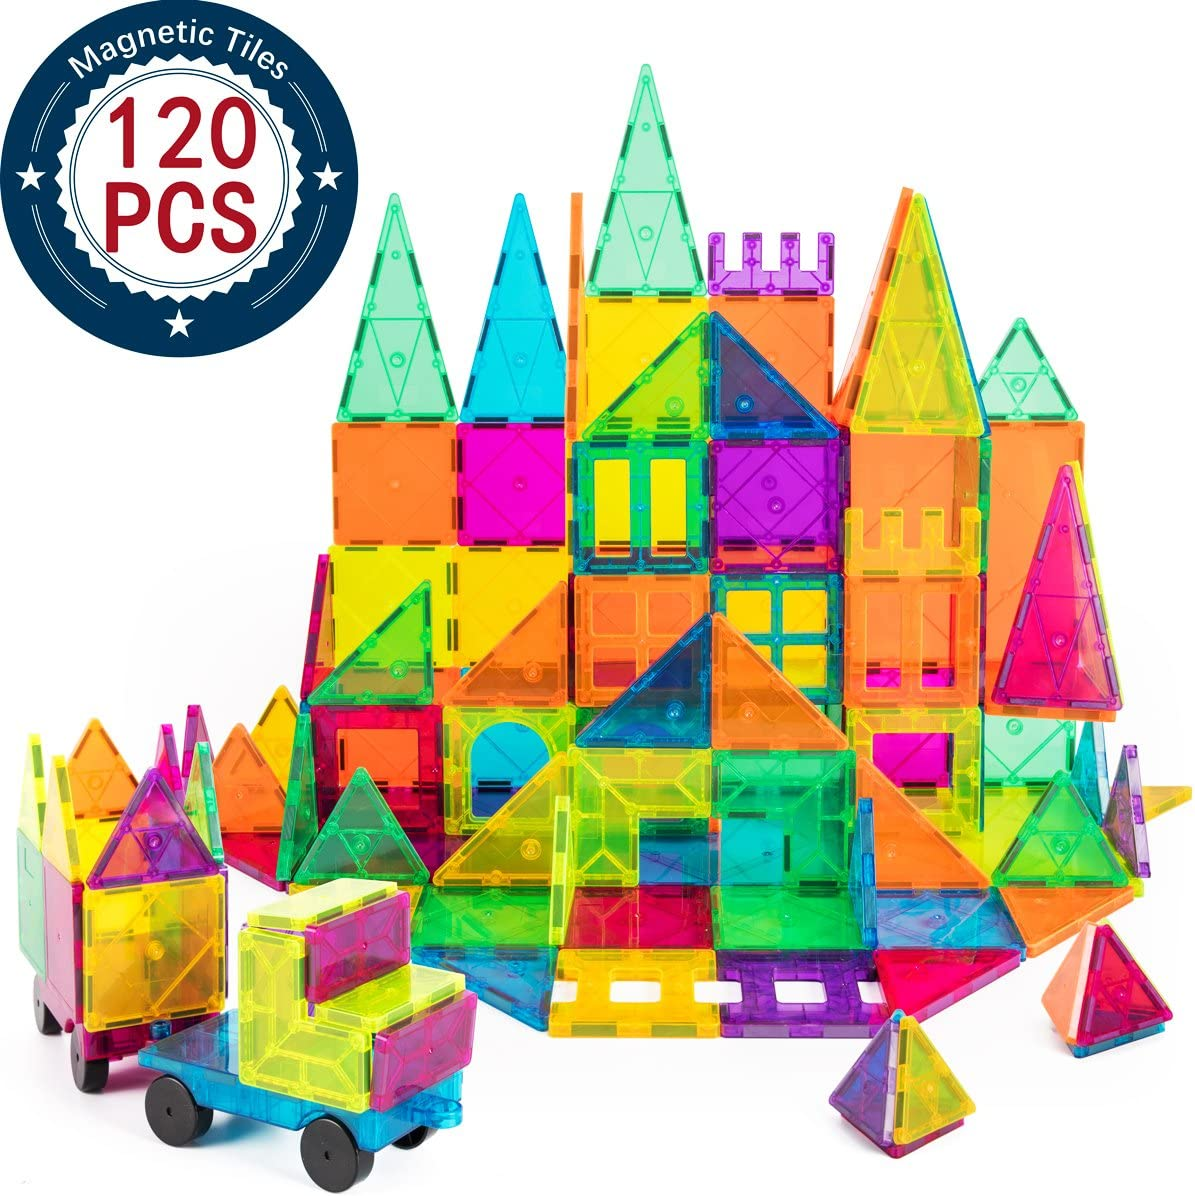 Top 10 Best Magnetic Toys for Kids (2020 Reviews & Guide) 10